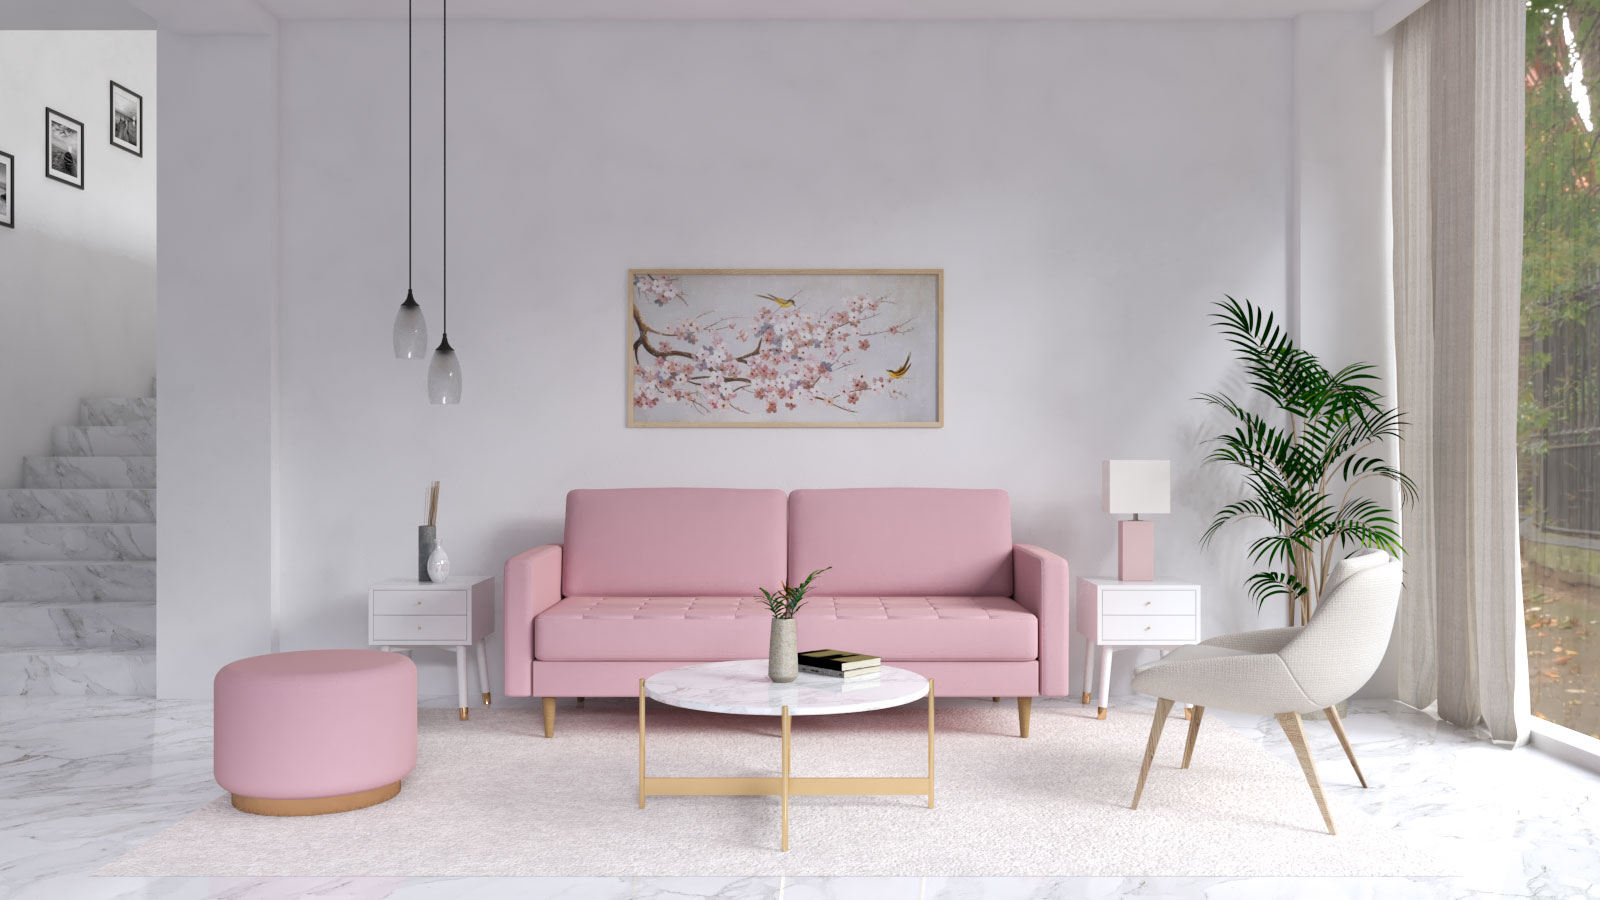 White wall color with pink couch